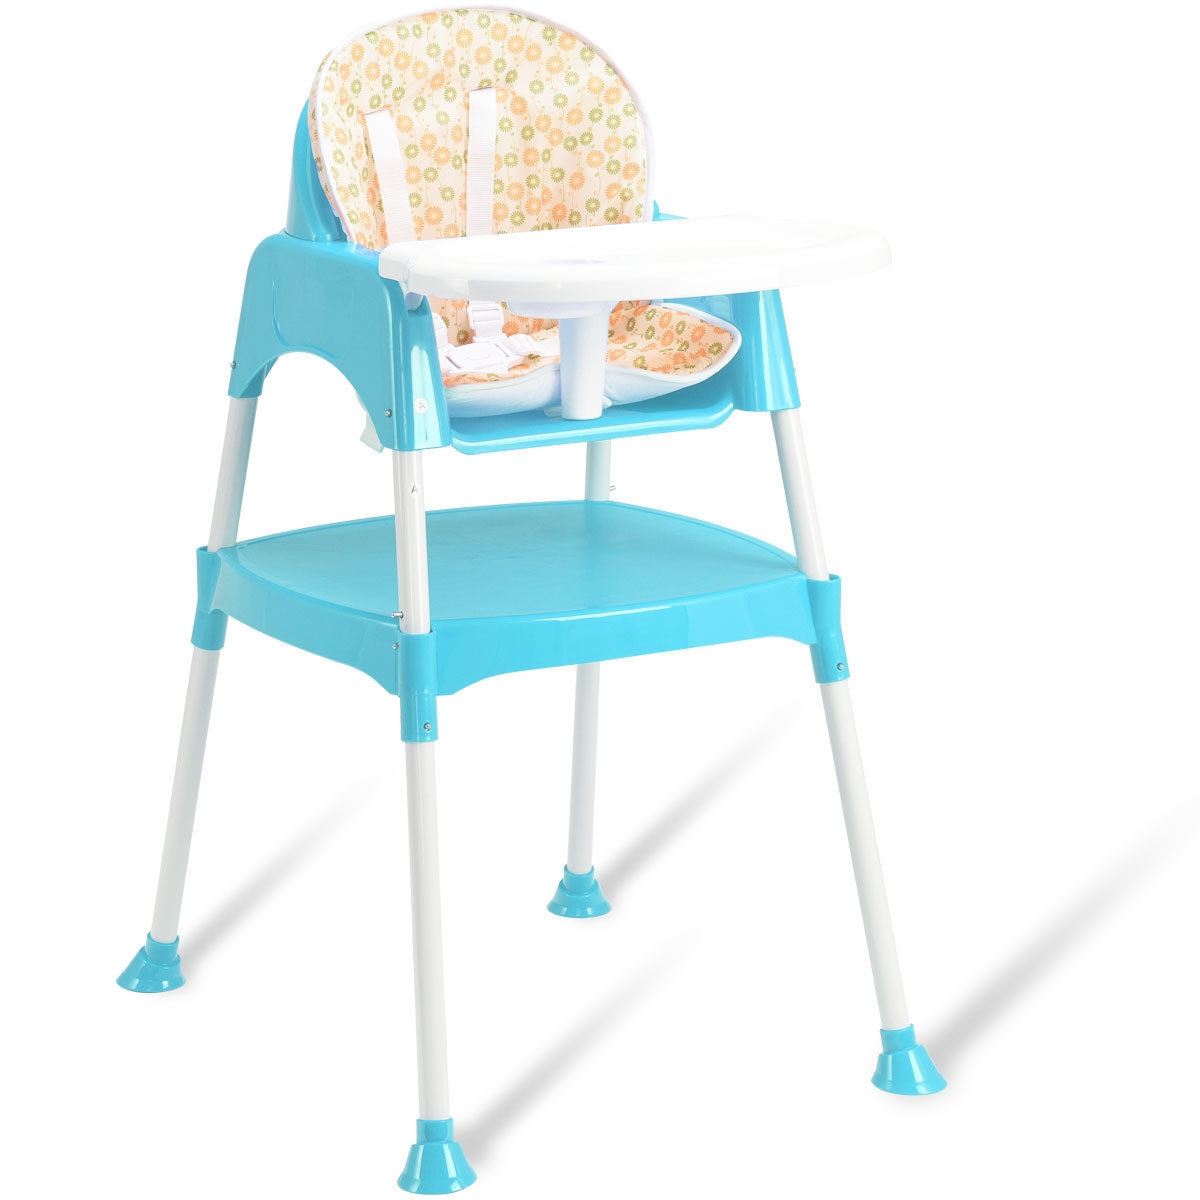 3 in 1 Convertible Table Seat Toddler Feeding Baby High Chair BB4479color